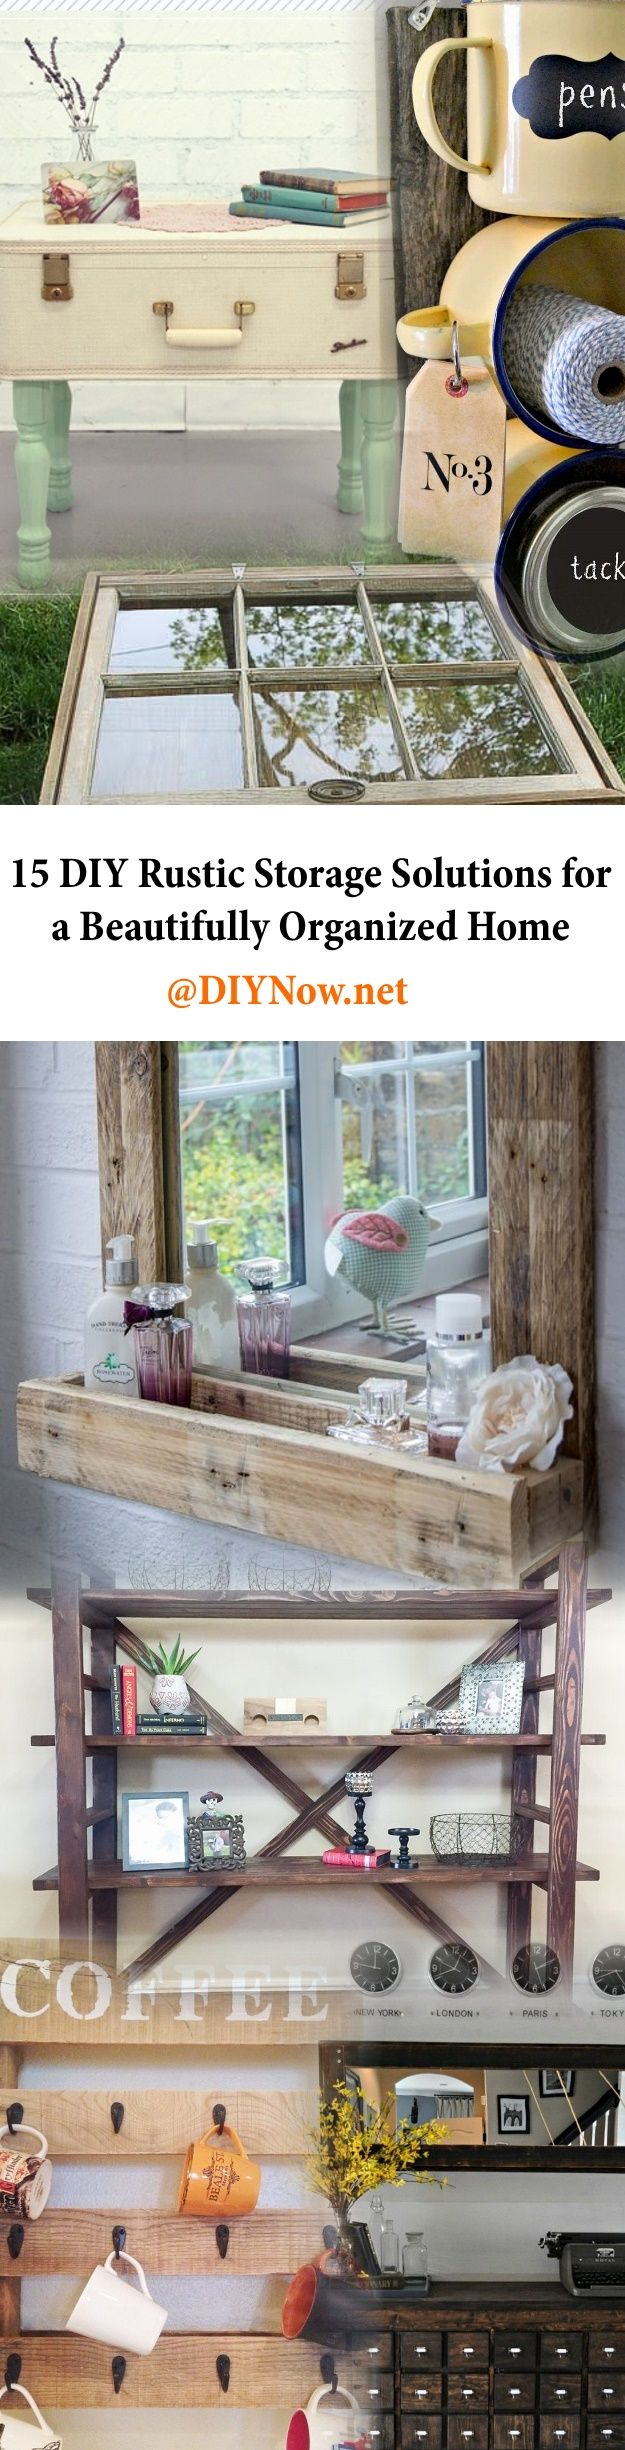 12 DIY Rustic Storage Solutions for a Beautifully Organized Home